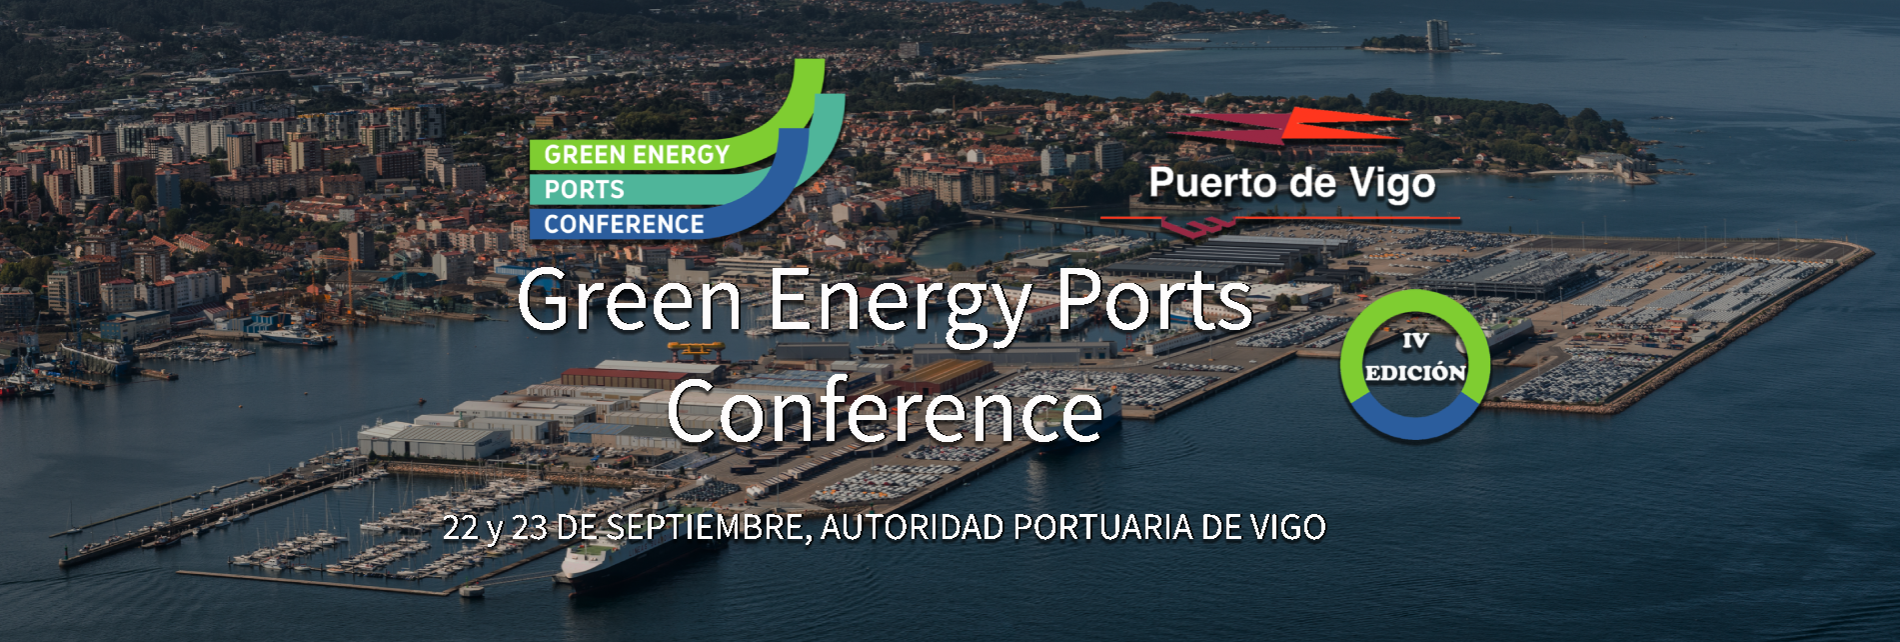 Green Energy Ports Conference 2021